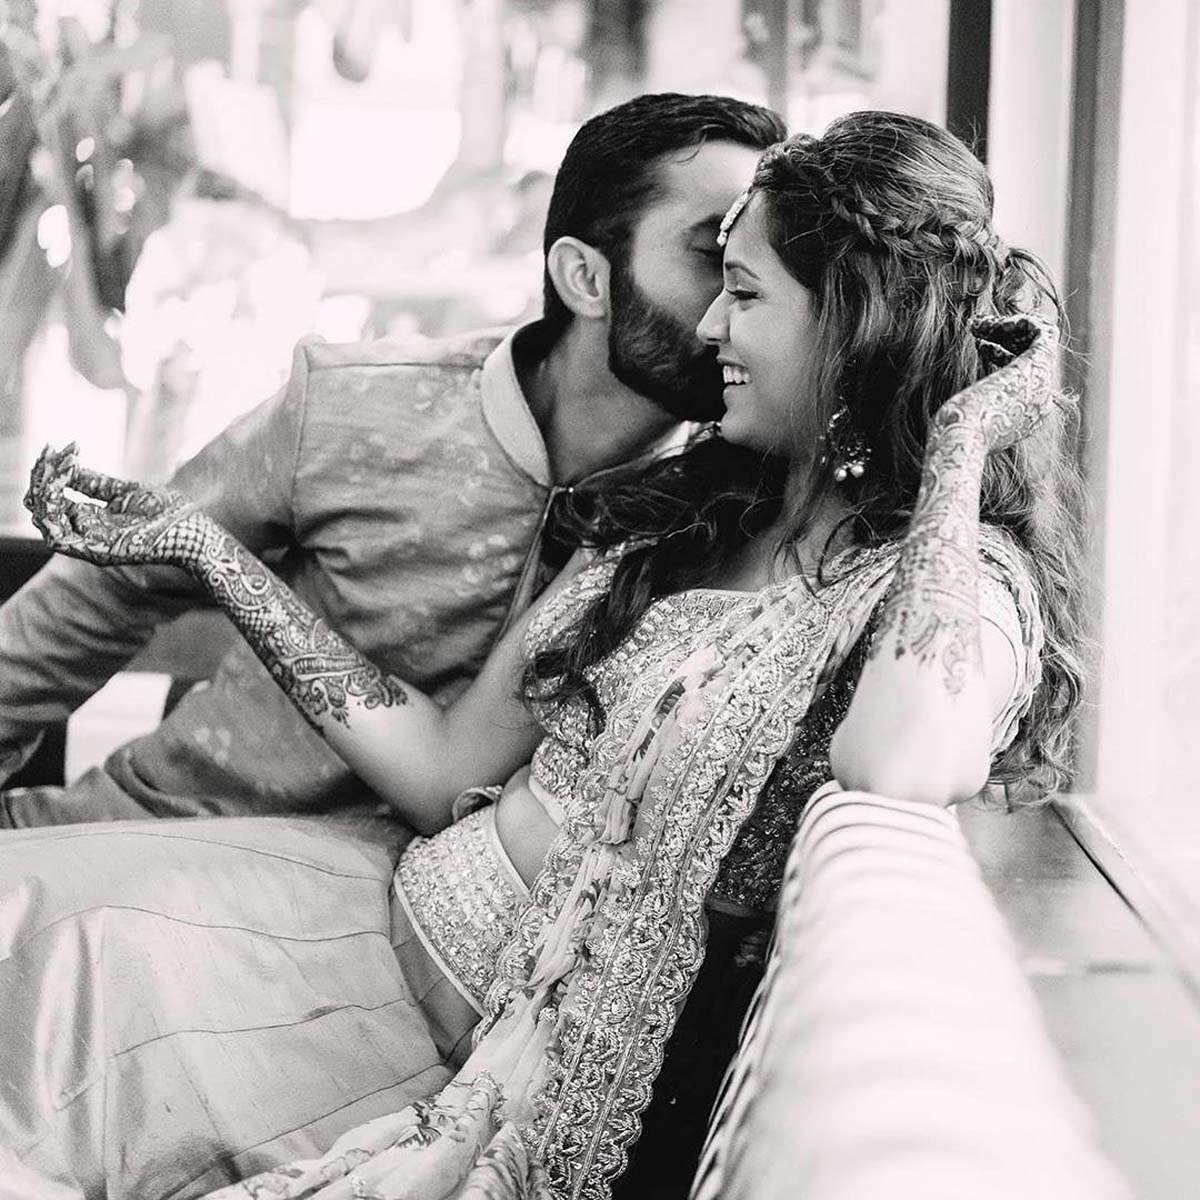 Dinesh Karthik and wife Dipika Pallikal's heartwarming throwback pictures from their wedding ceremony